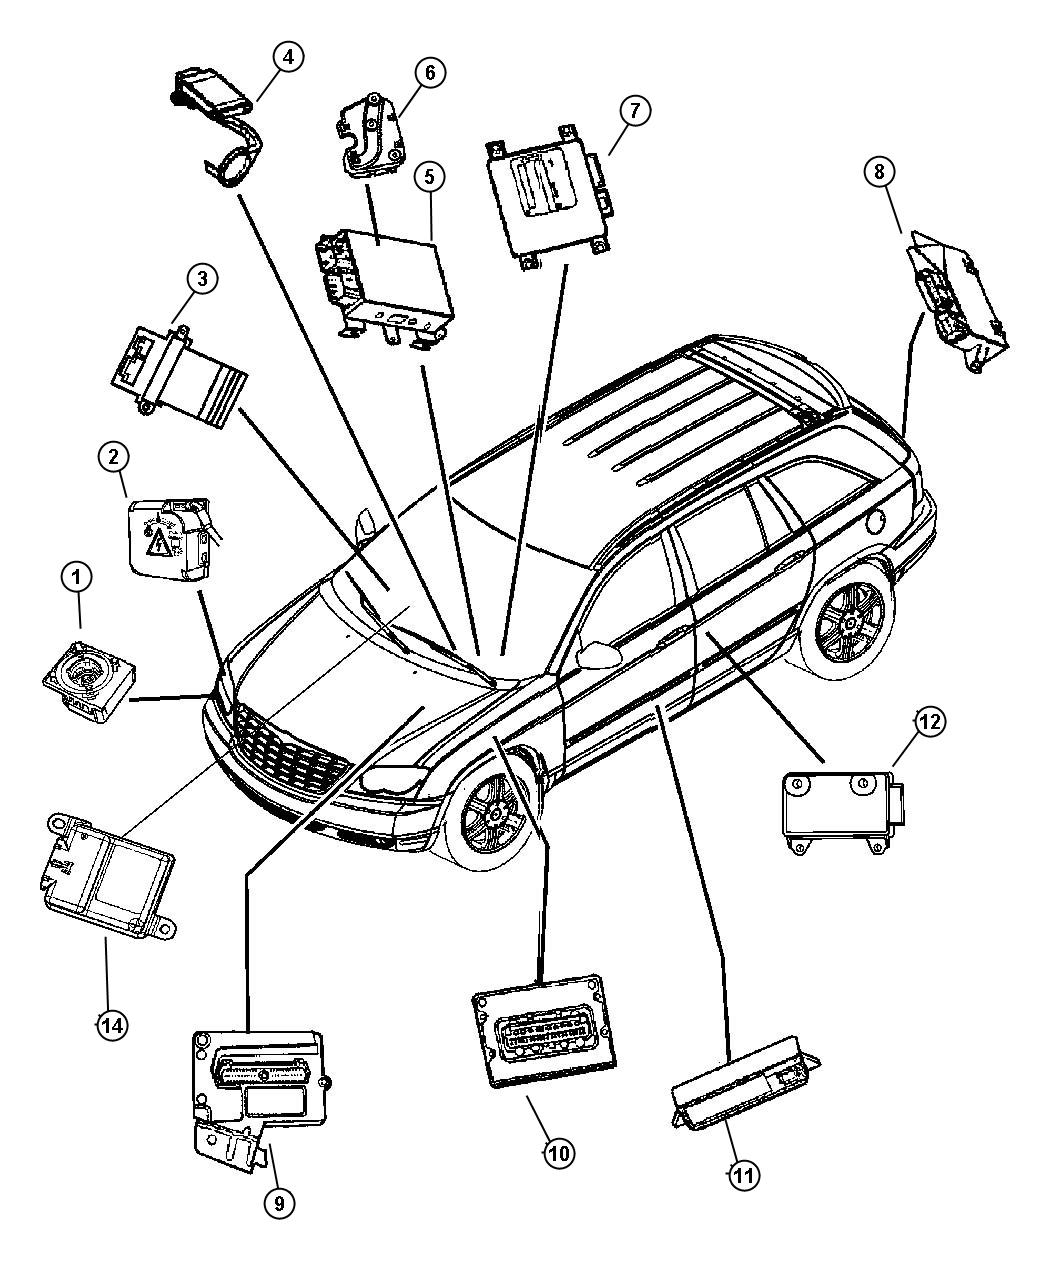 [EQHS_1162]  How to bypass immobilizer on 2004 chrysler pacifica | 05 Chrysler Pacifica Immobilizer Wiring Diagram |  | dbyta.ru